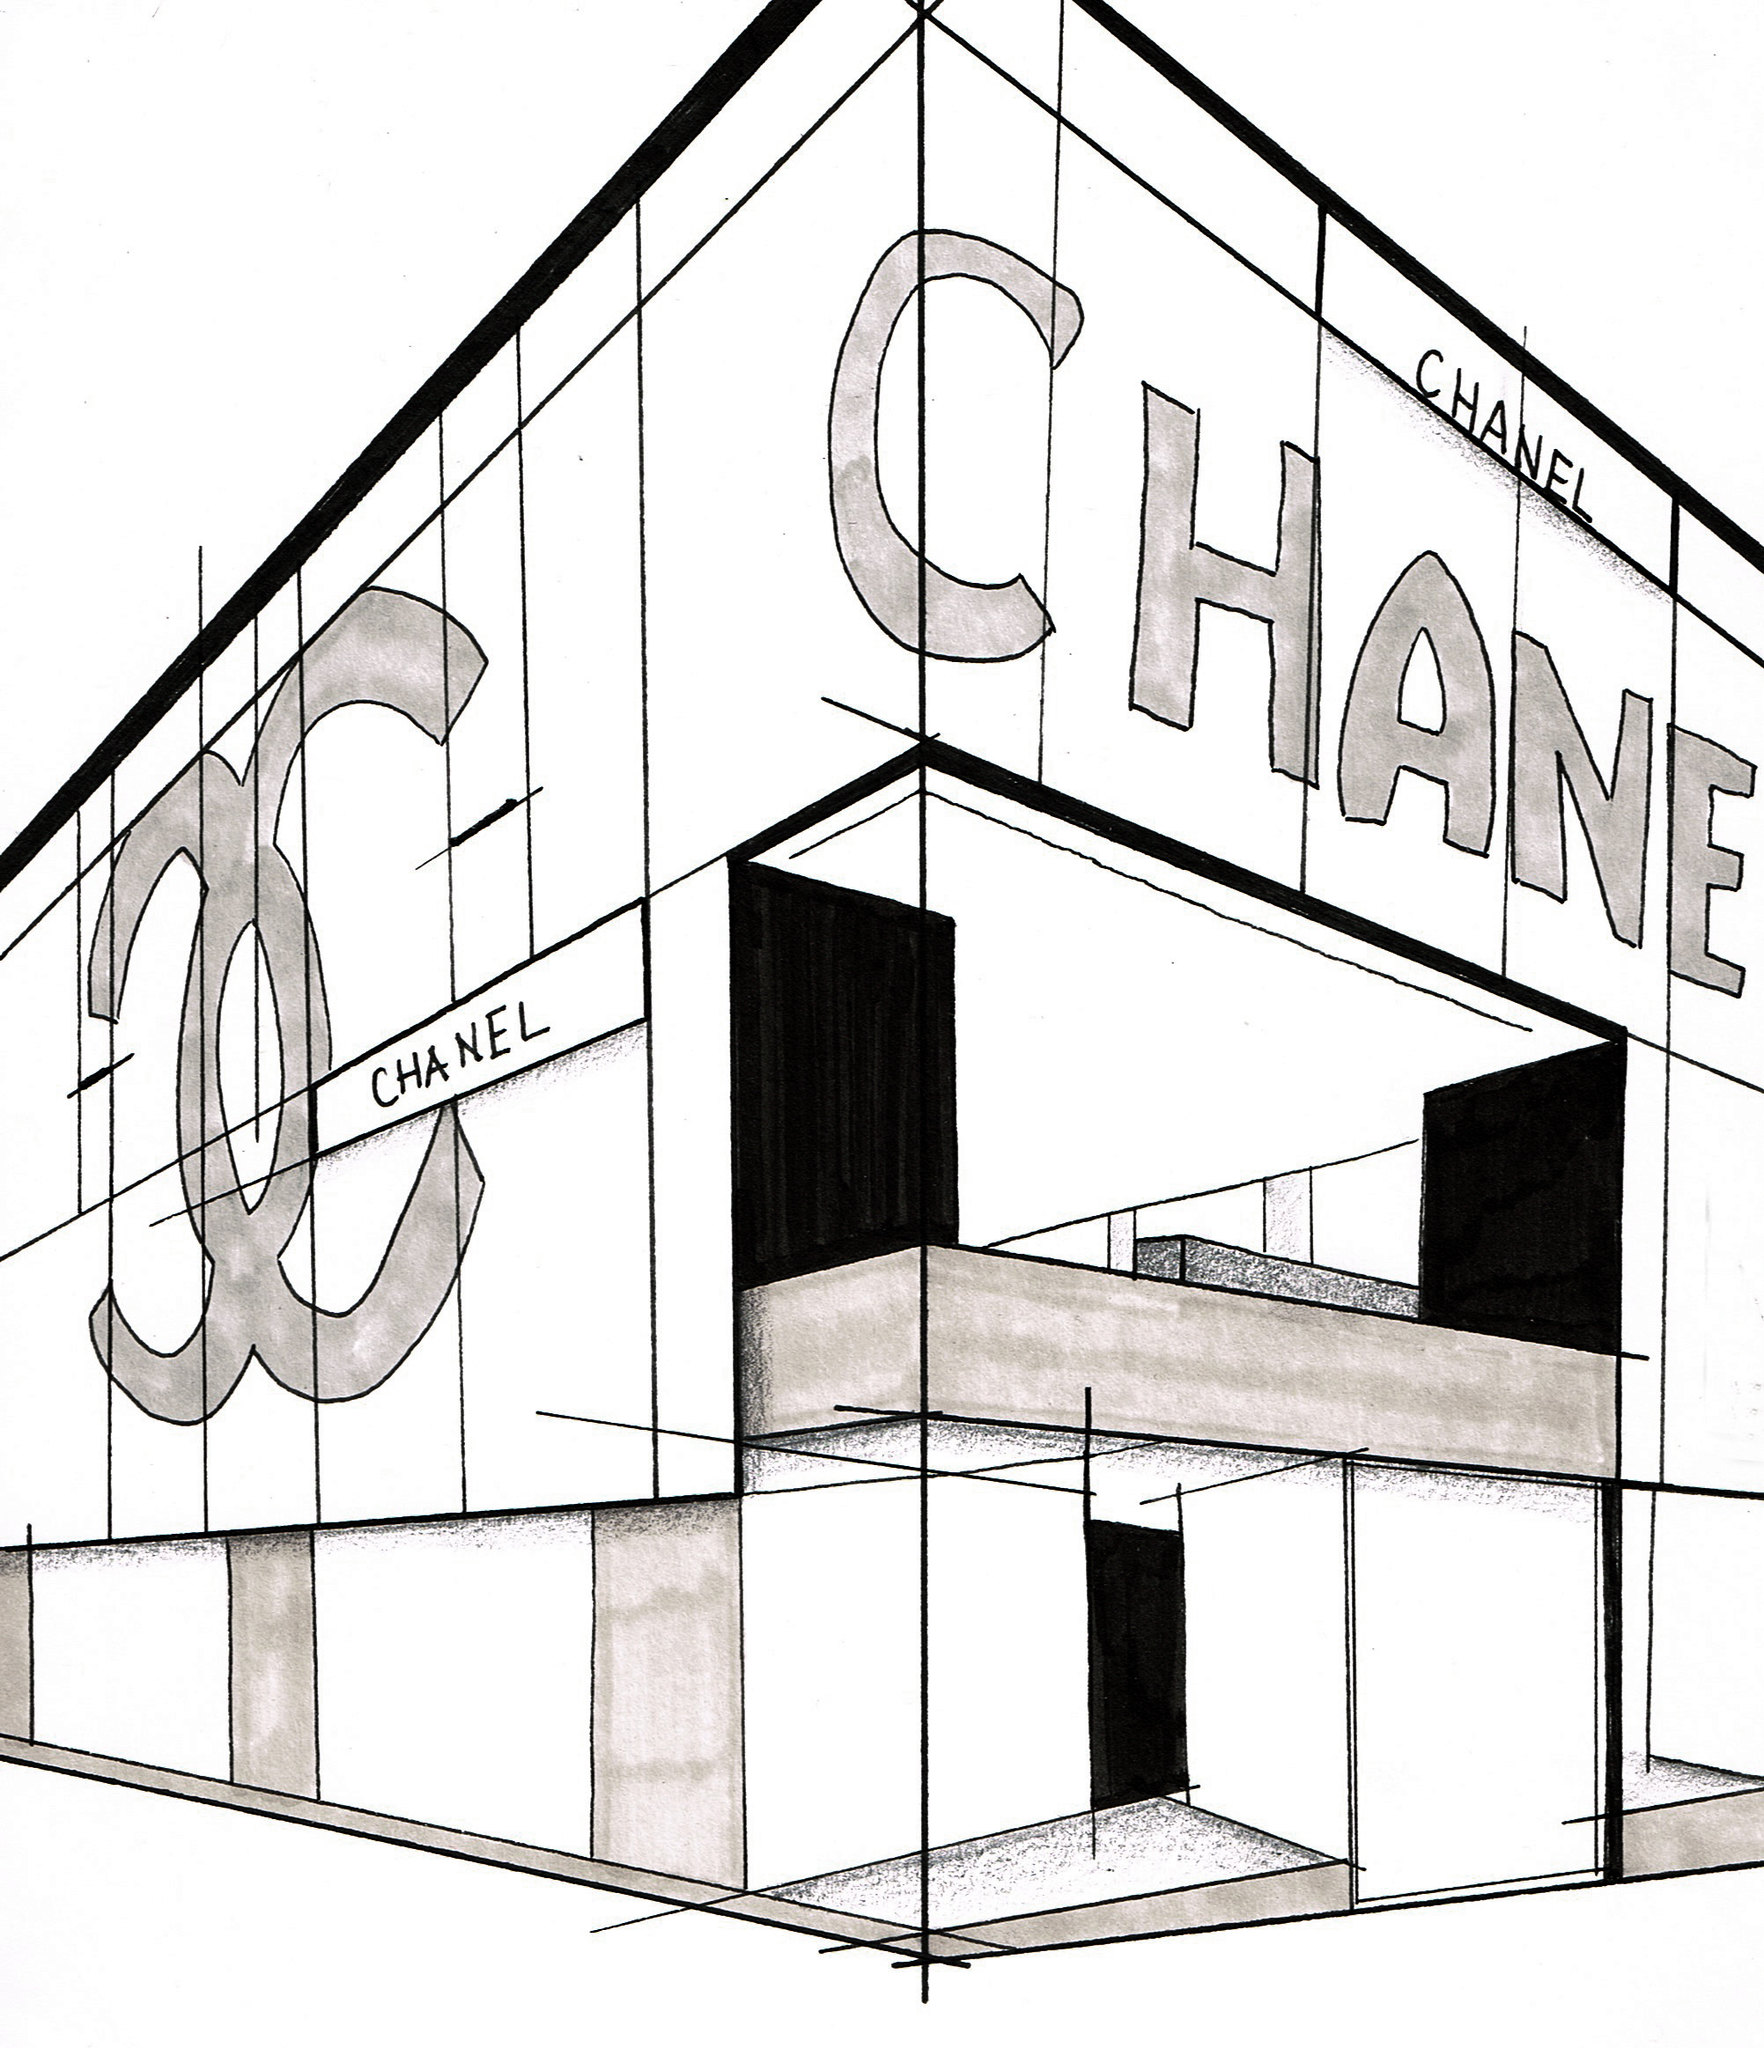 something fashion blogger valencia moda, estilo, fashion editorial window shopping architecture, fashion illustration blog promarker interior design, architecture sketch style outfits, jill sander paris chanel osaka rem koolhas new york PRADA dior